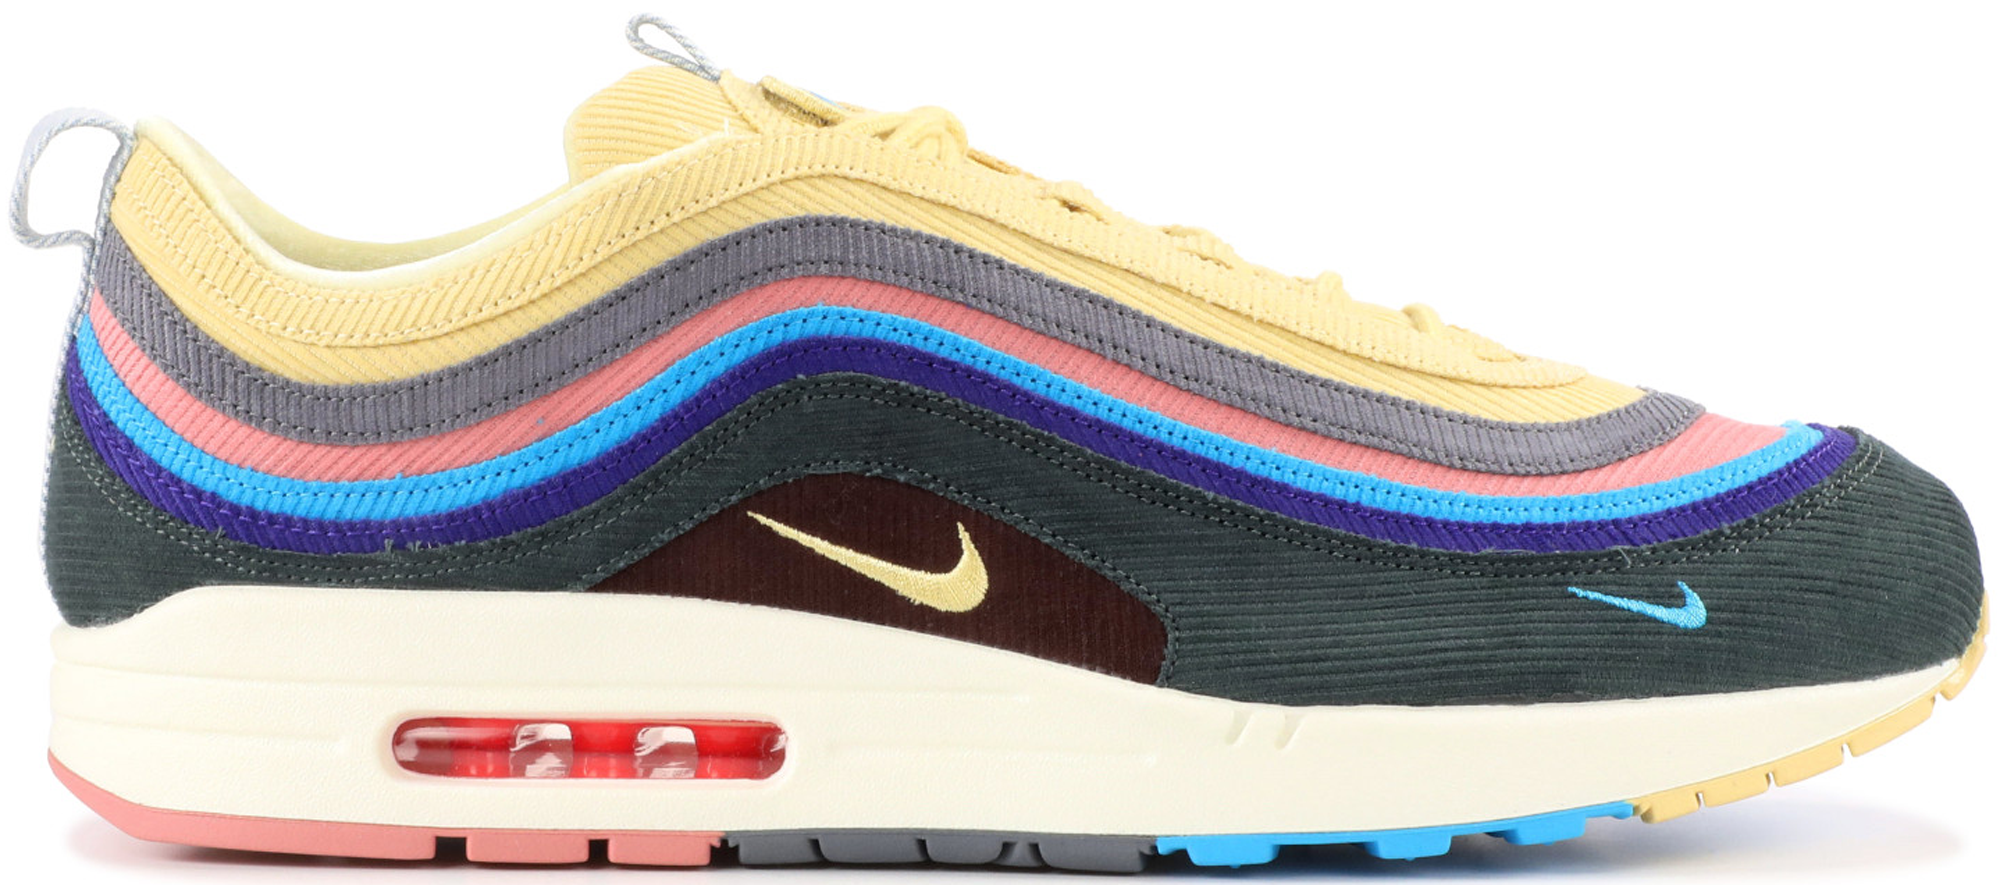 Air Max 97/1 Sean Wotherspoon (With Accessories)